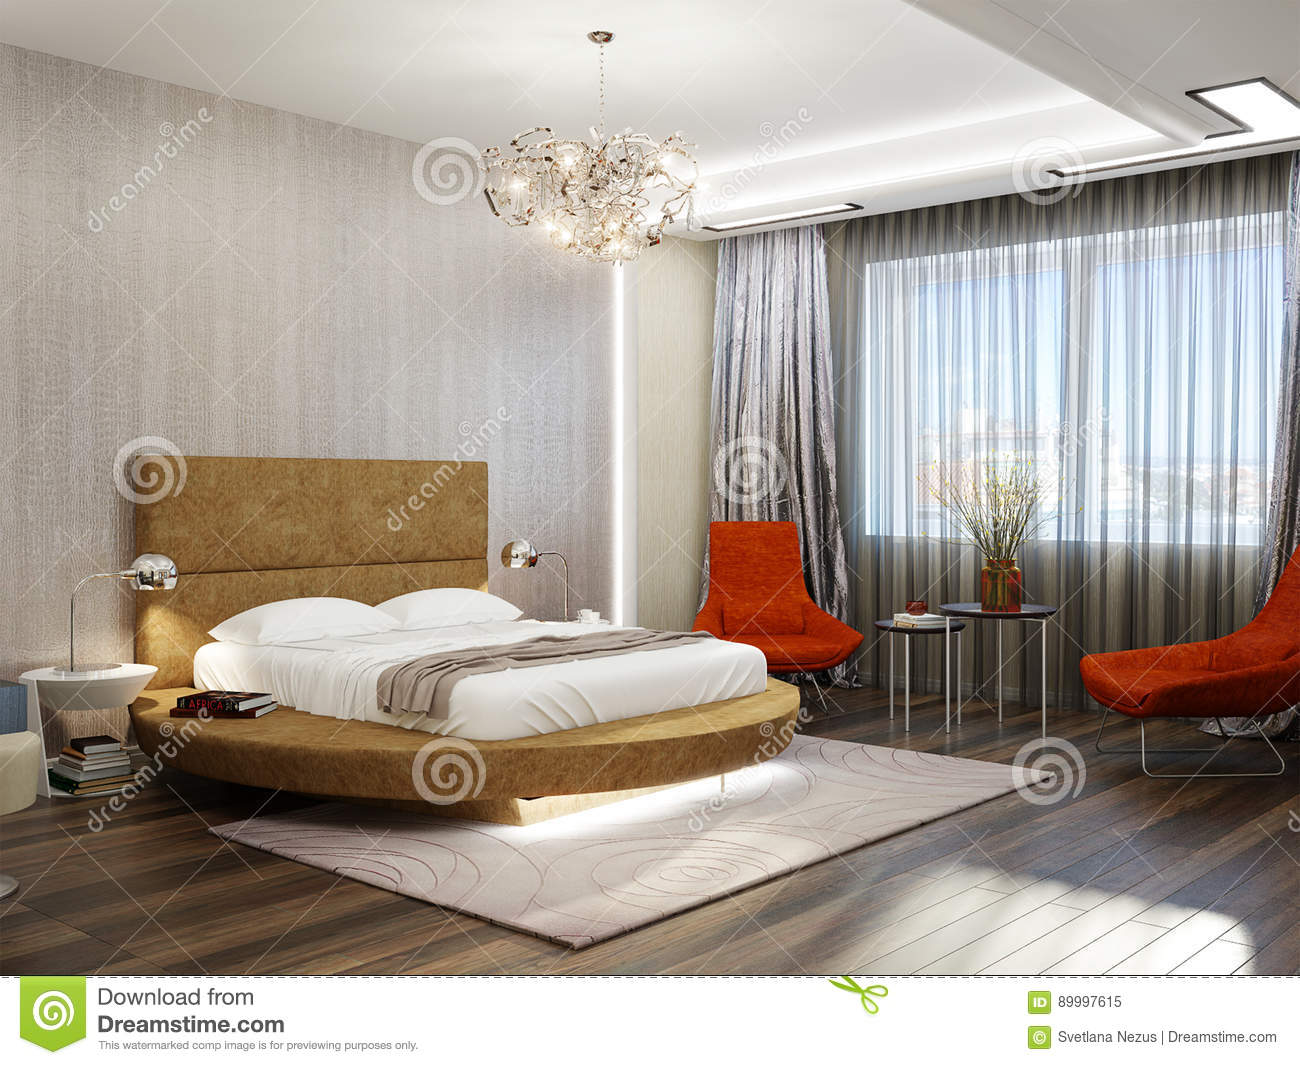 modern bedroom interior design with round bed stock illustration rh dreamstime com